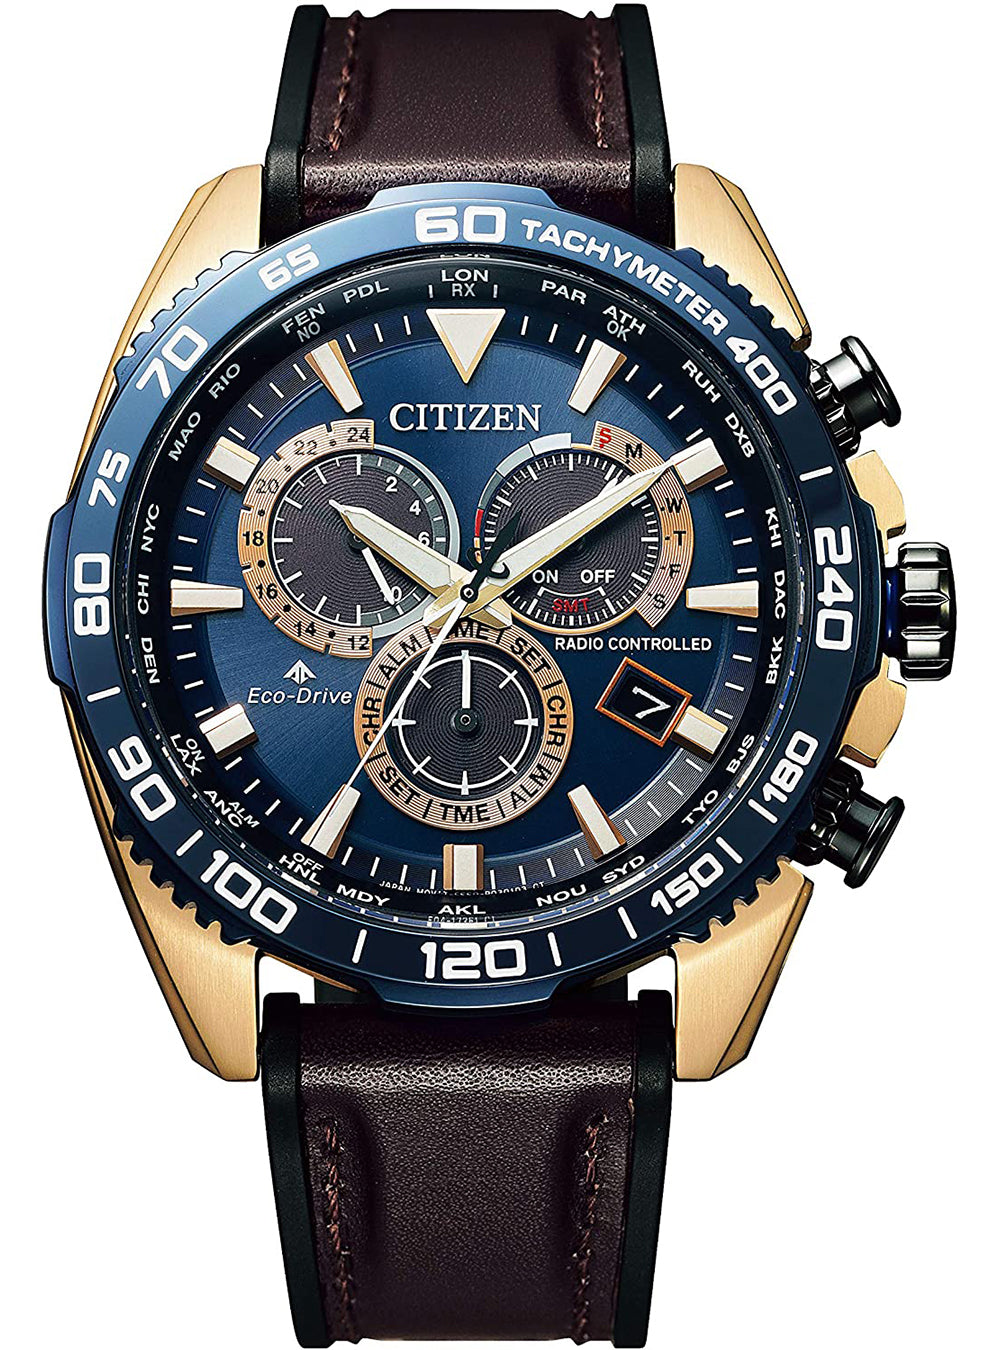 CITIZEN PROMASTER ECO-DRIVE CB5039-11L JAPAN MOV'T JDM